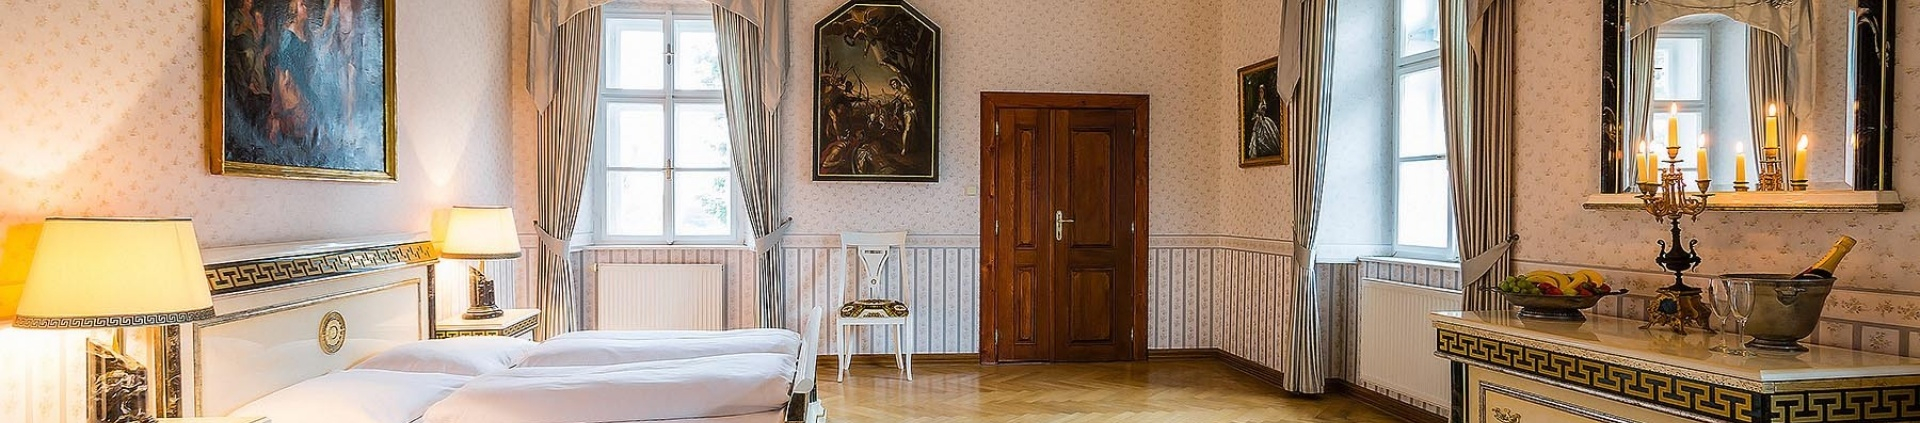 VIP Château suite package